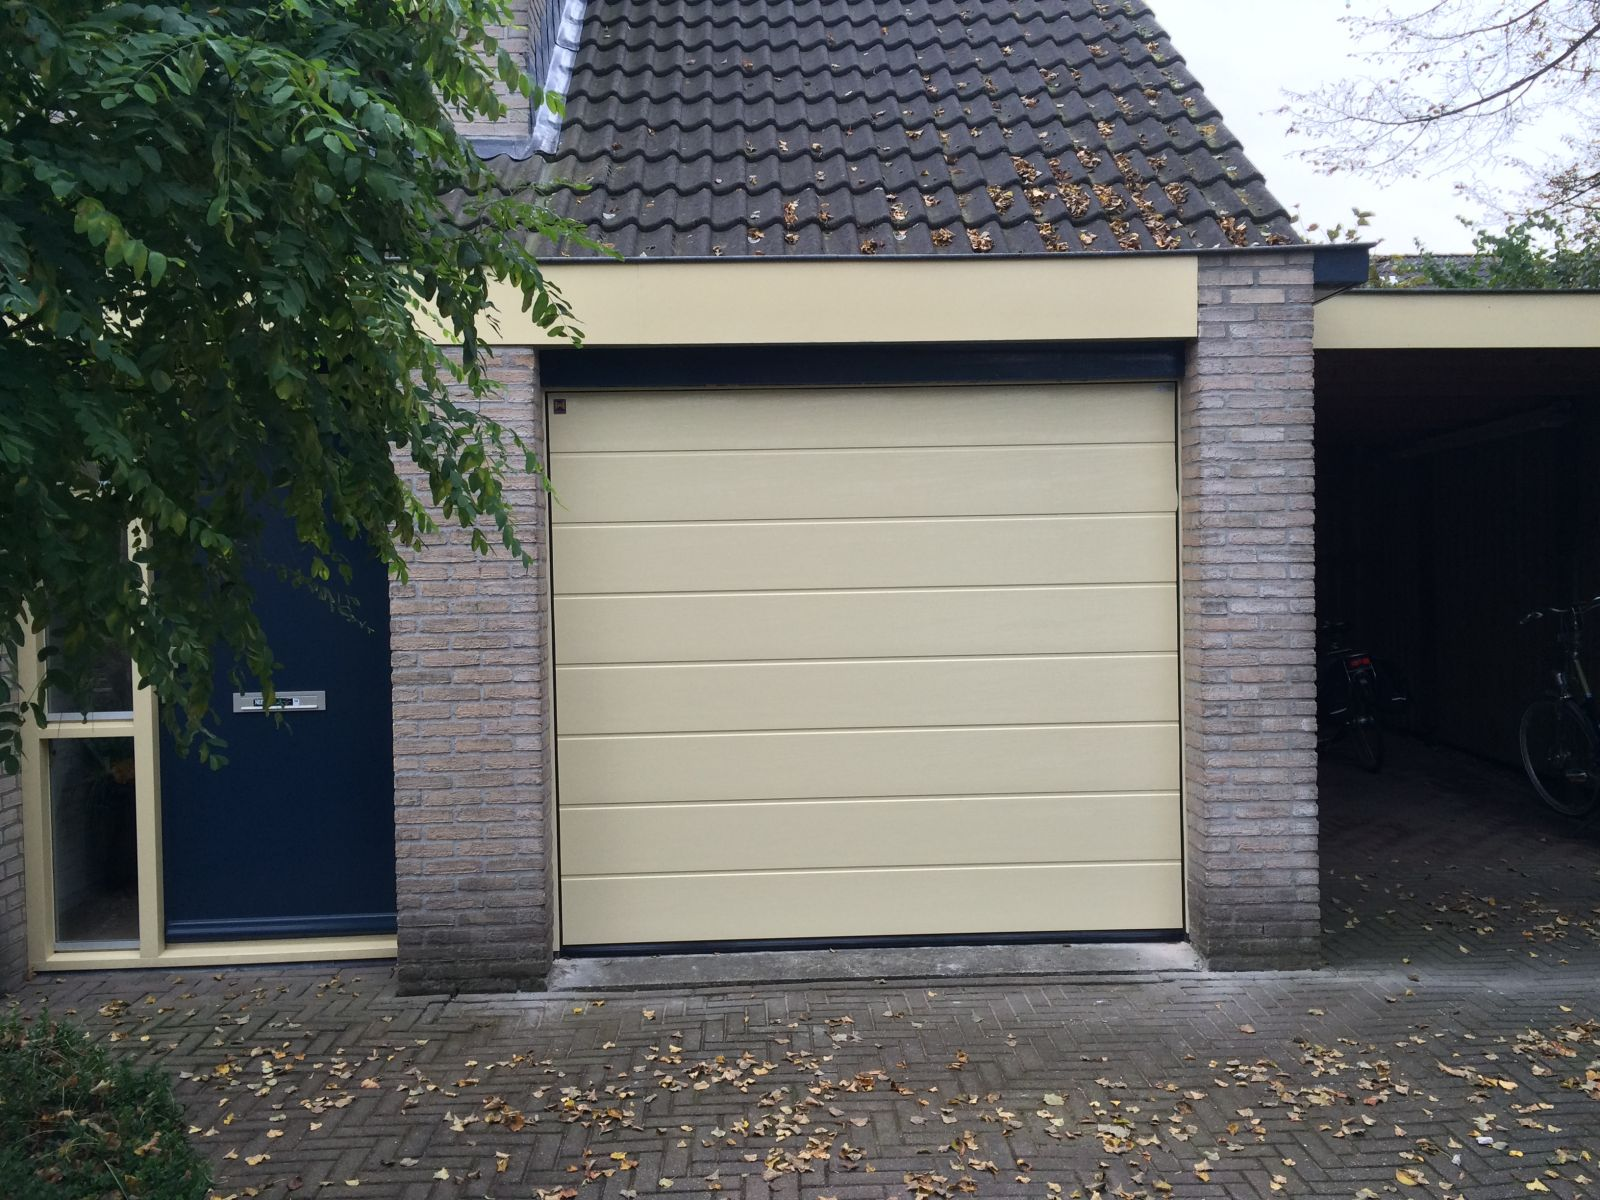 Hormann sectionaal garagedeur Buitink Deventer oktober 2016